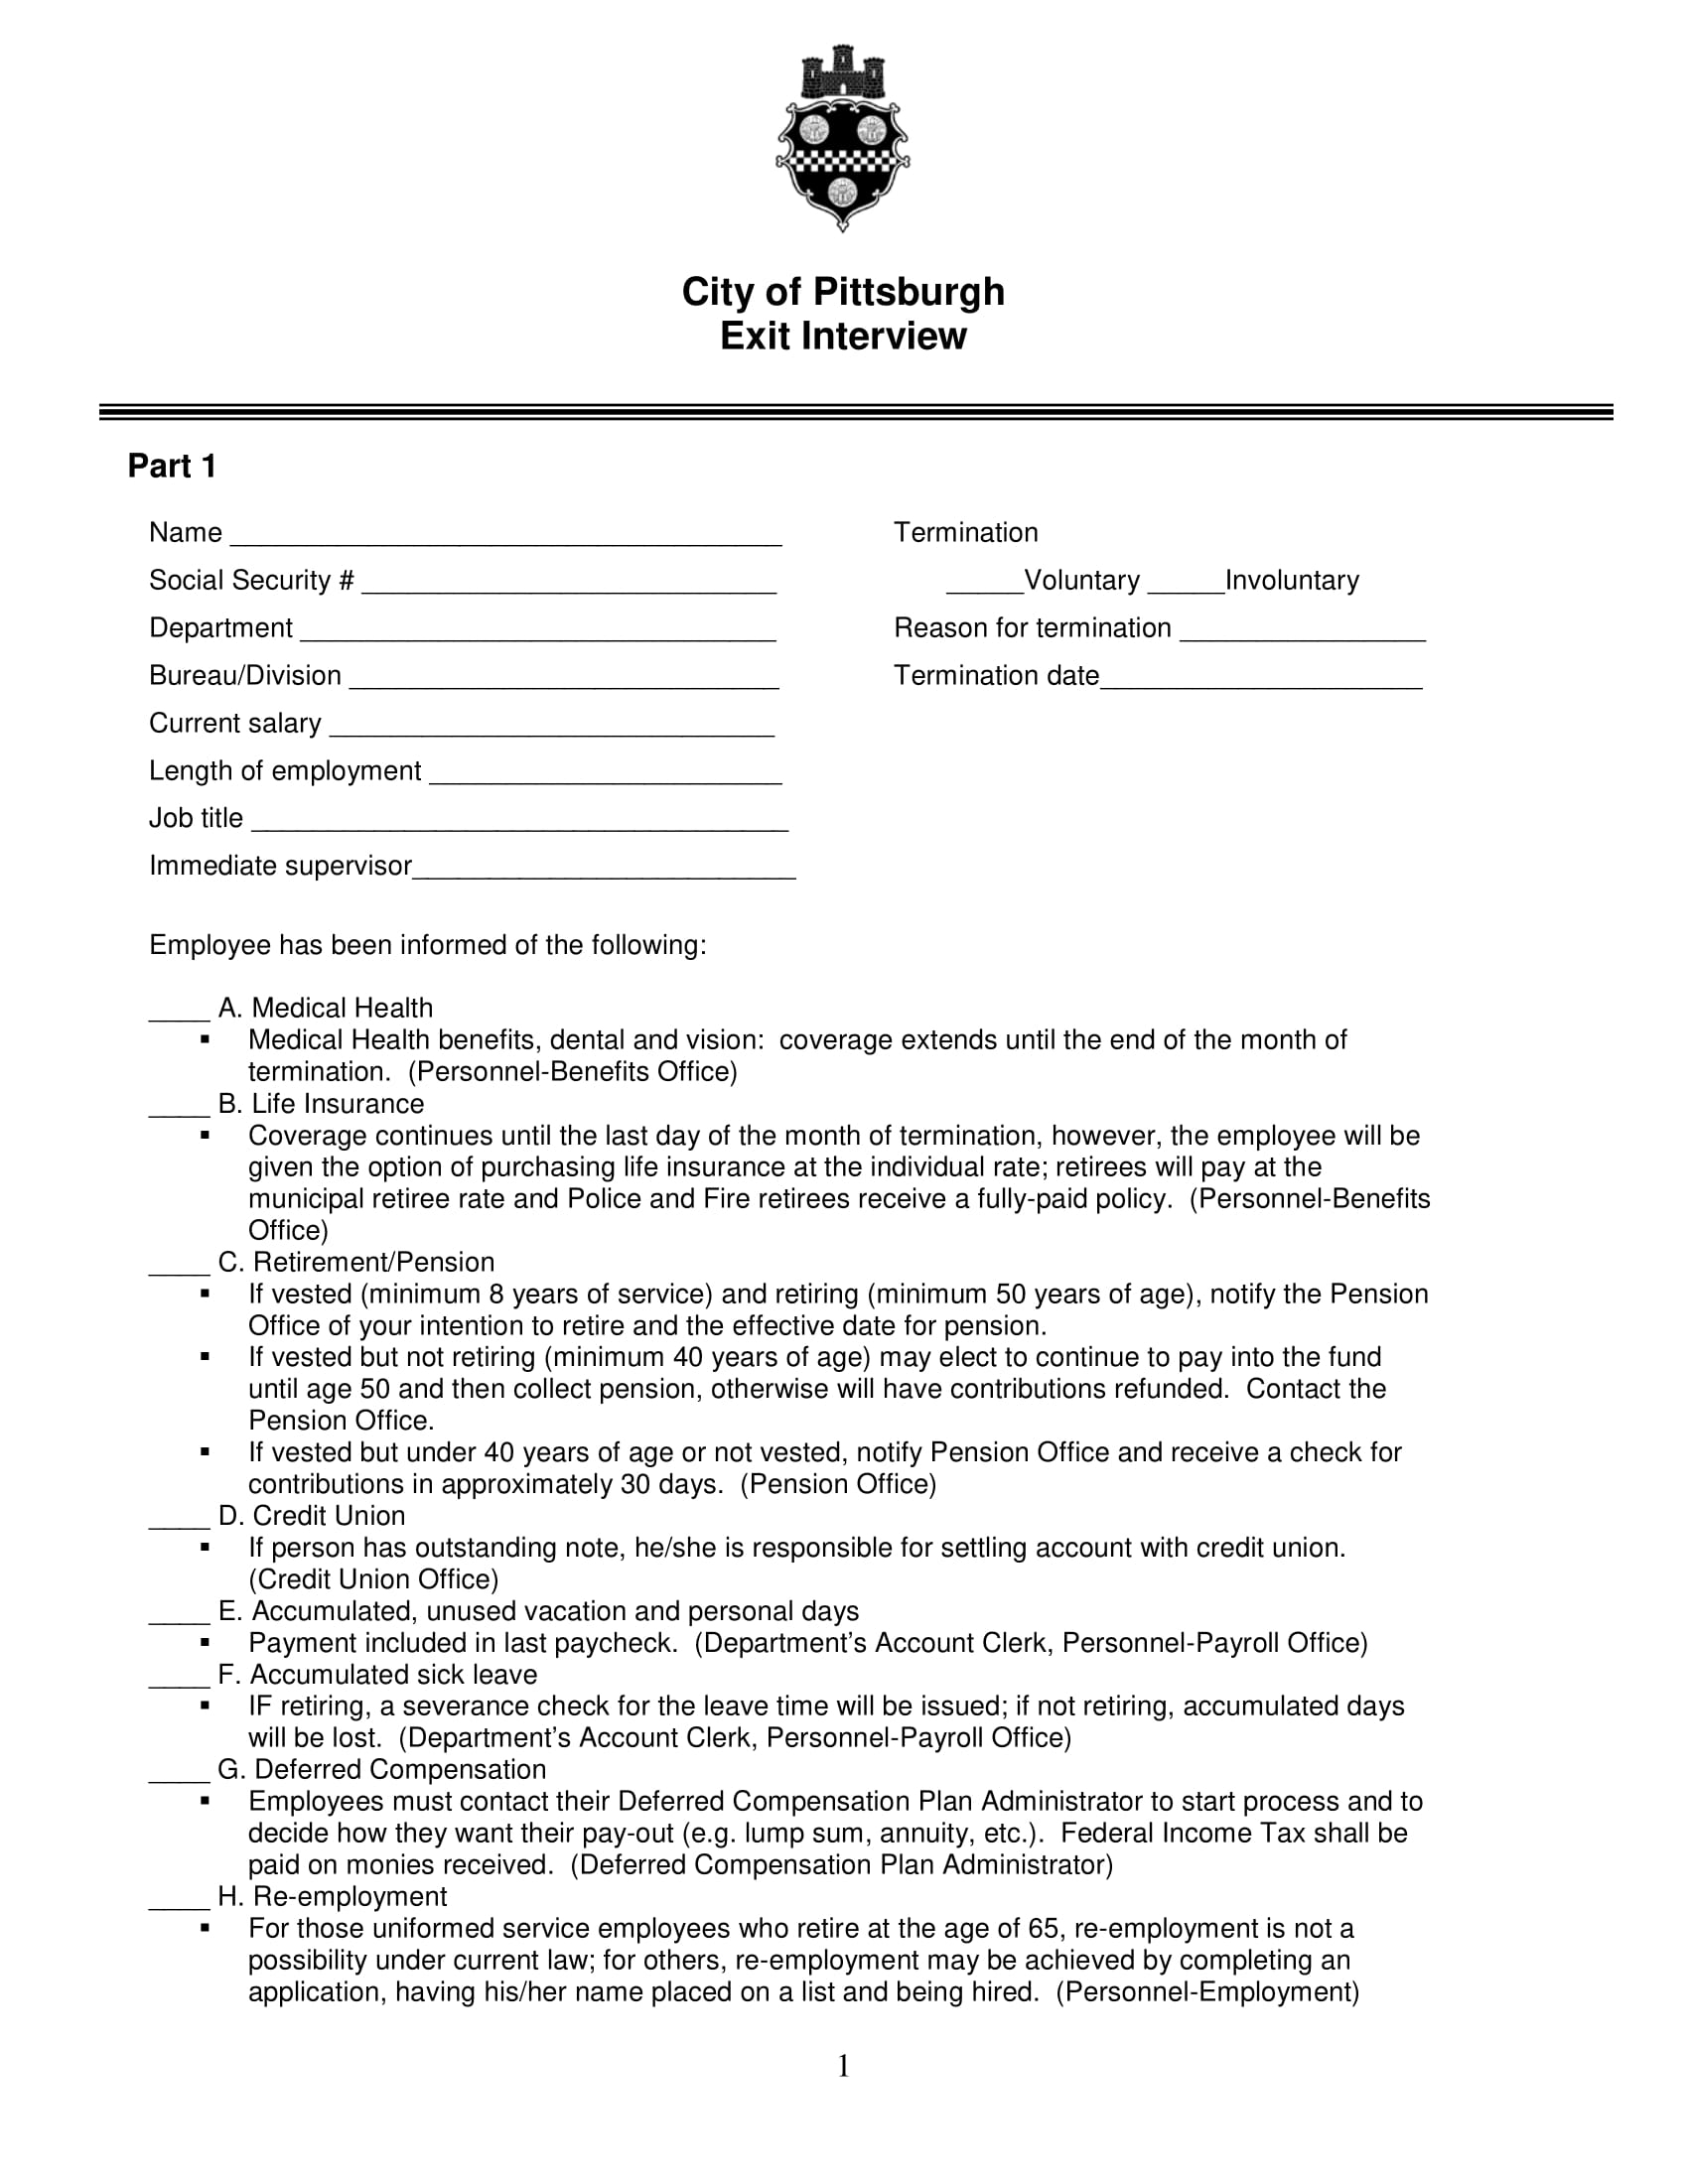 government employee exit interview form example